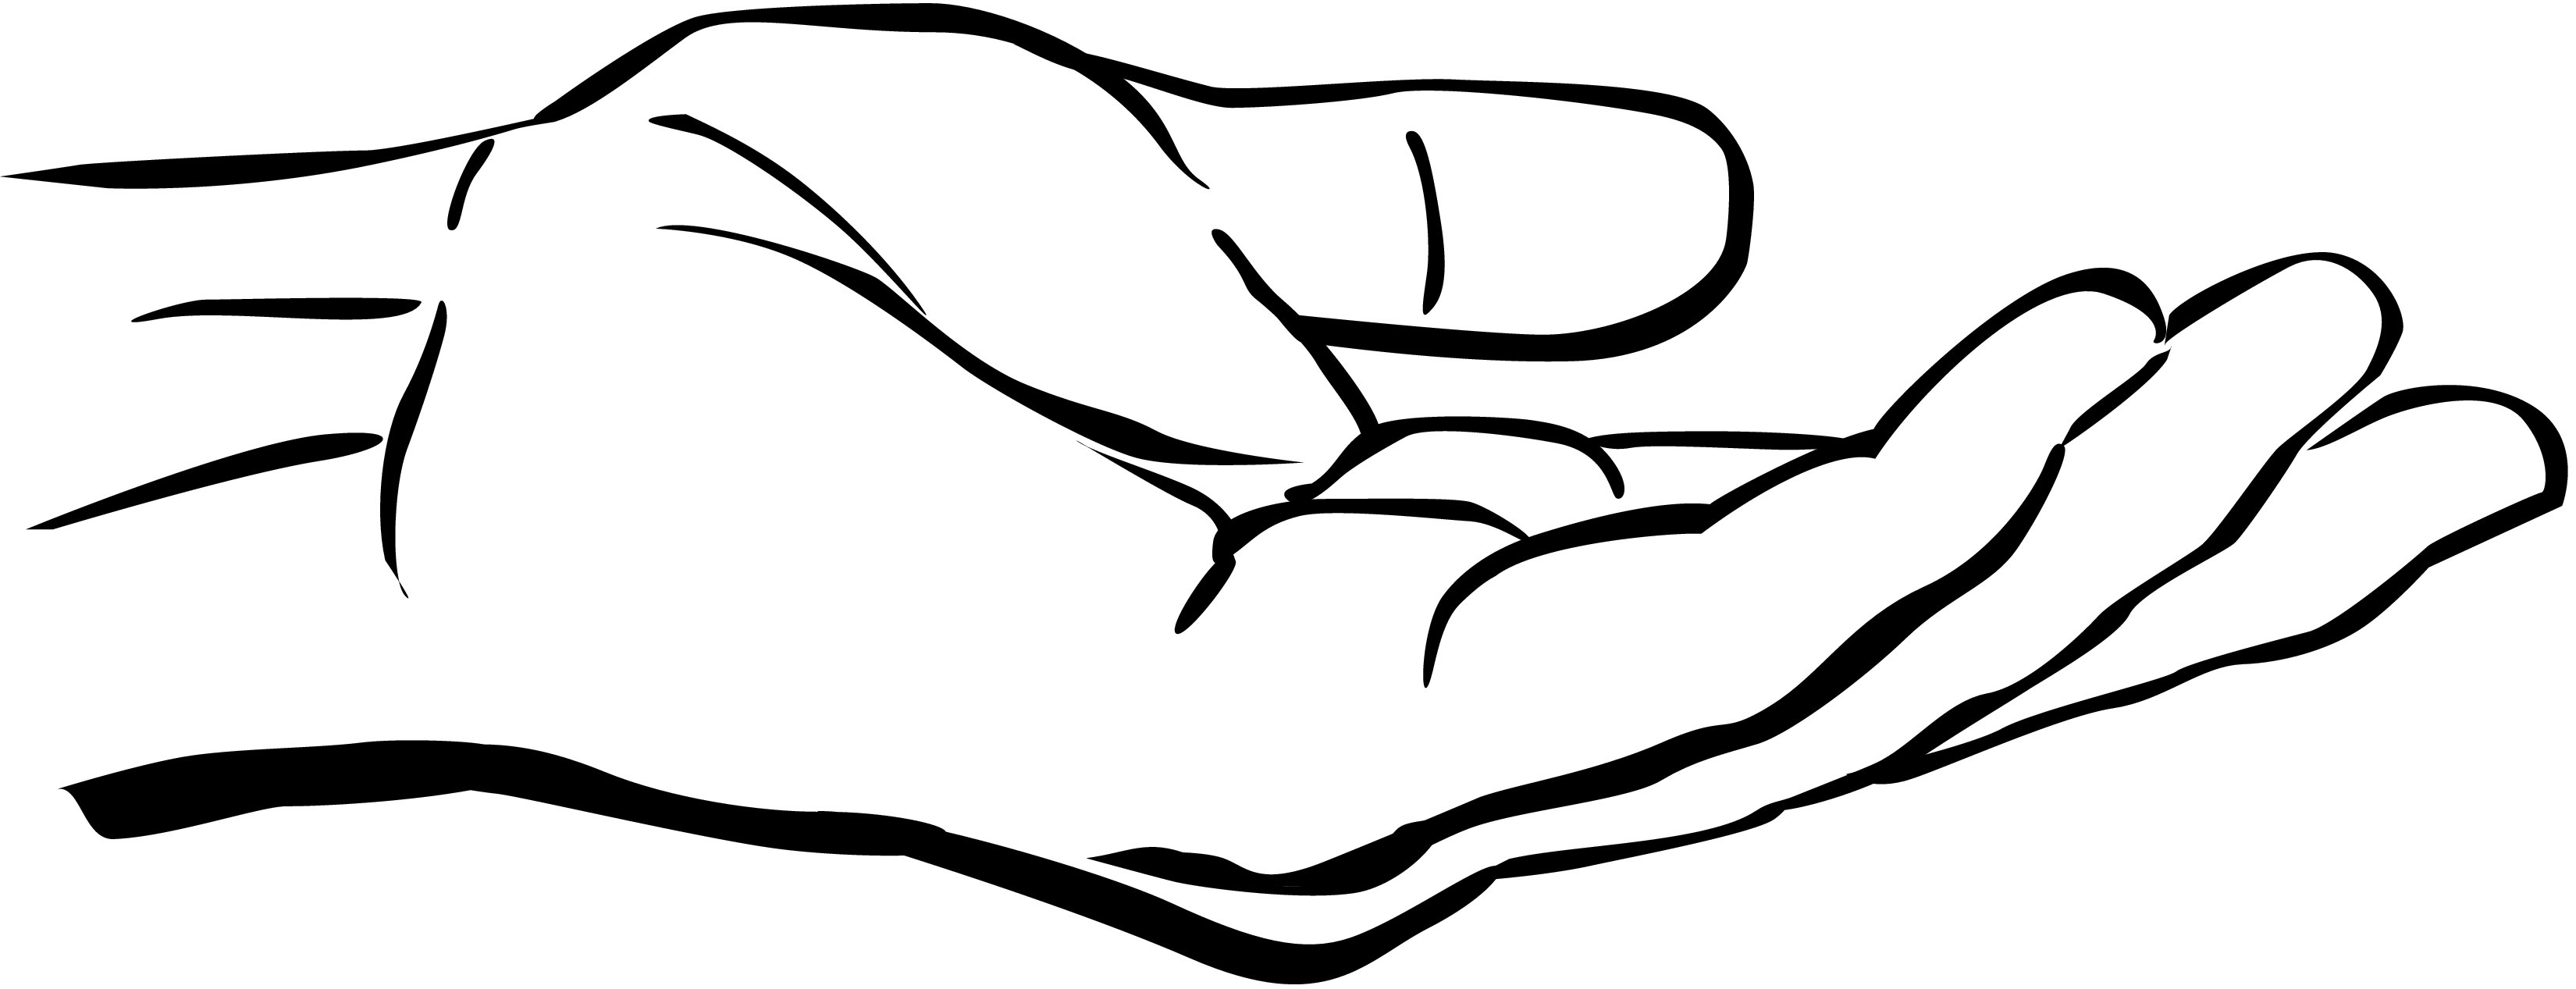 Reaching Hands Clip Art